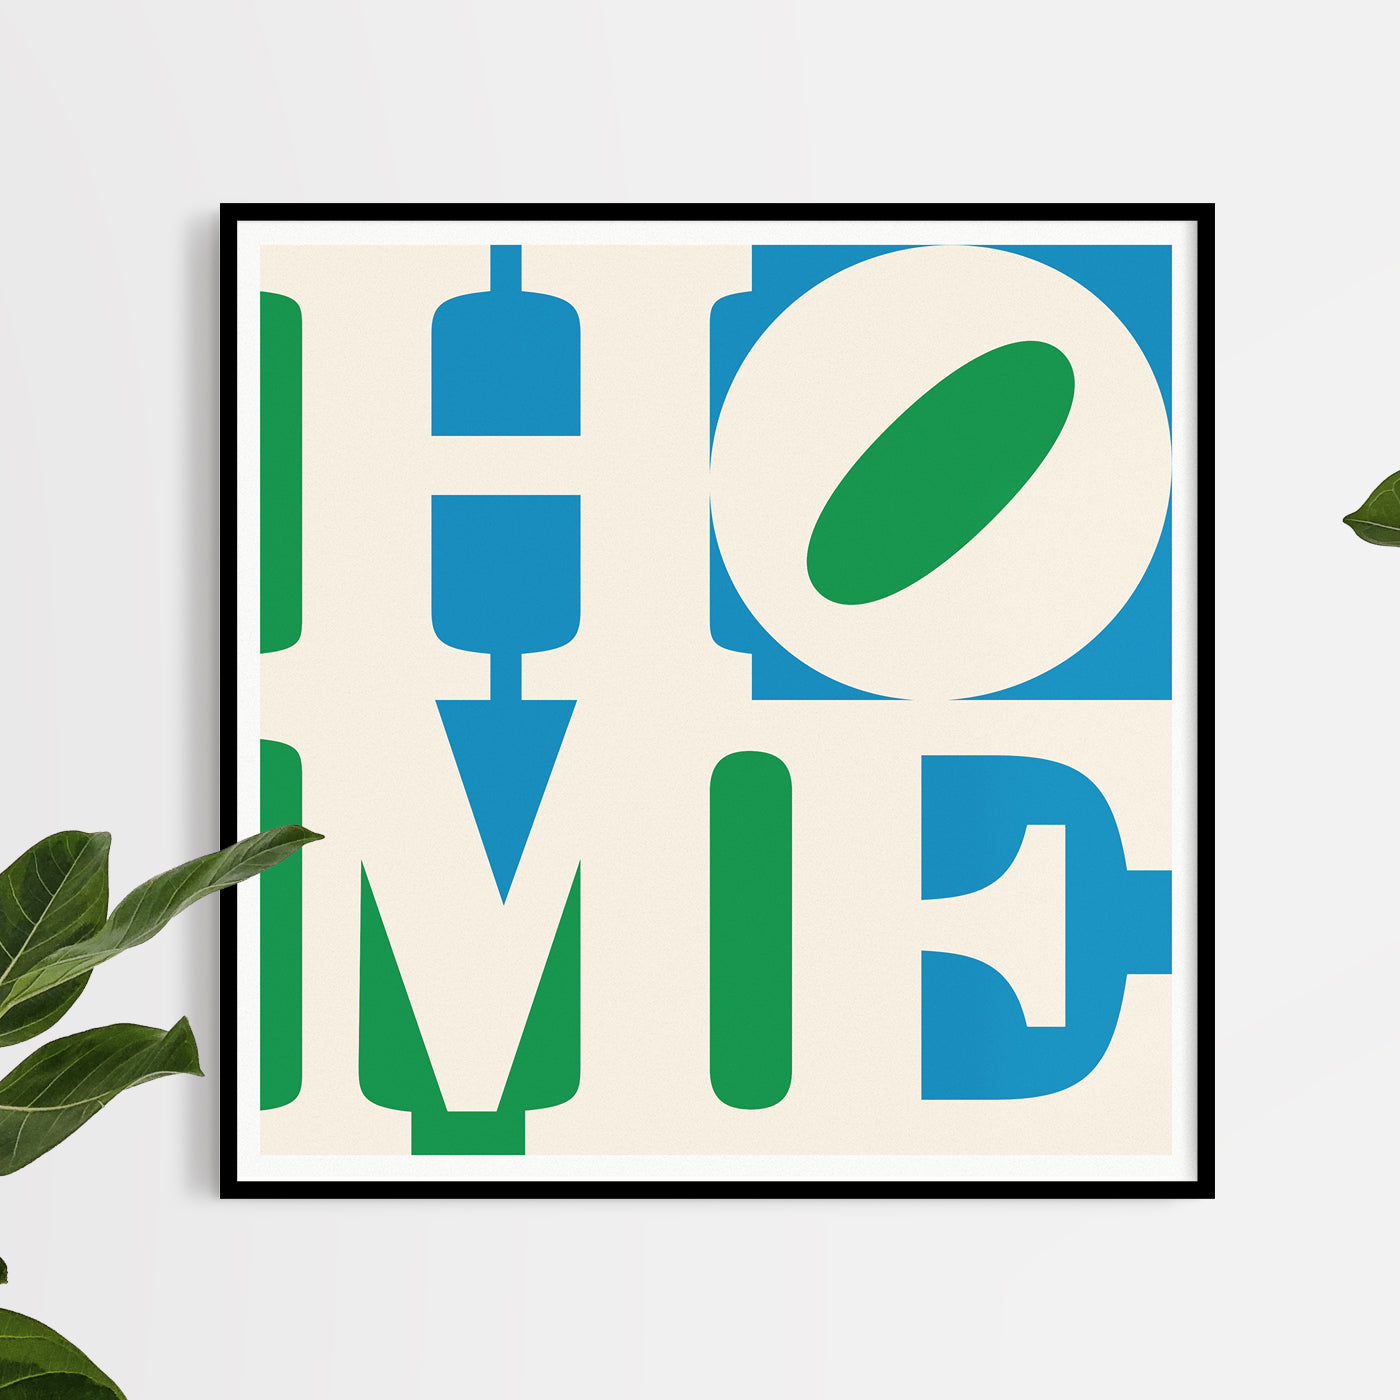 HOME: Heritage No. 4